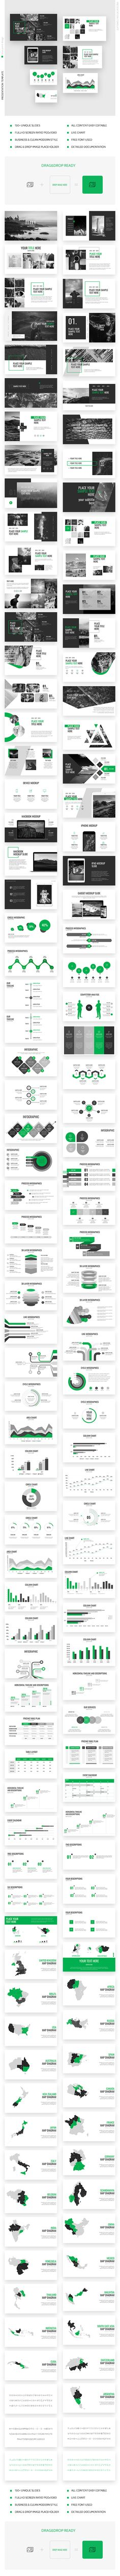 Startup Green  Trend Powerpoint Template #multipurpose #ecommerce • Download ➝ https://graphicriver.net/item/startup-green-trend-powerpoint-template/21285081?ref=pxcr